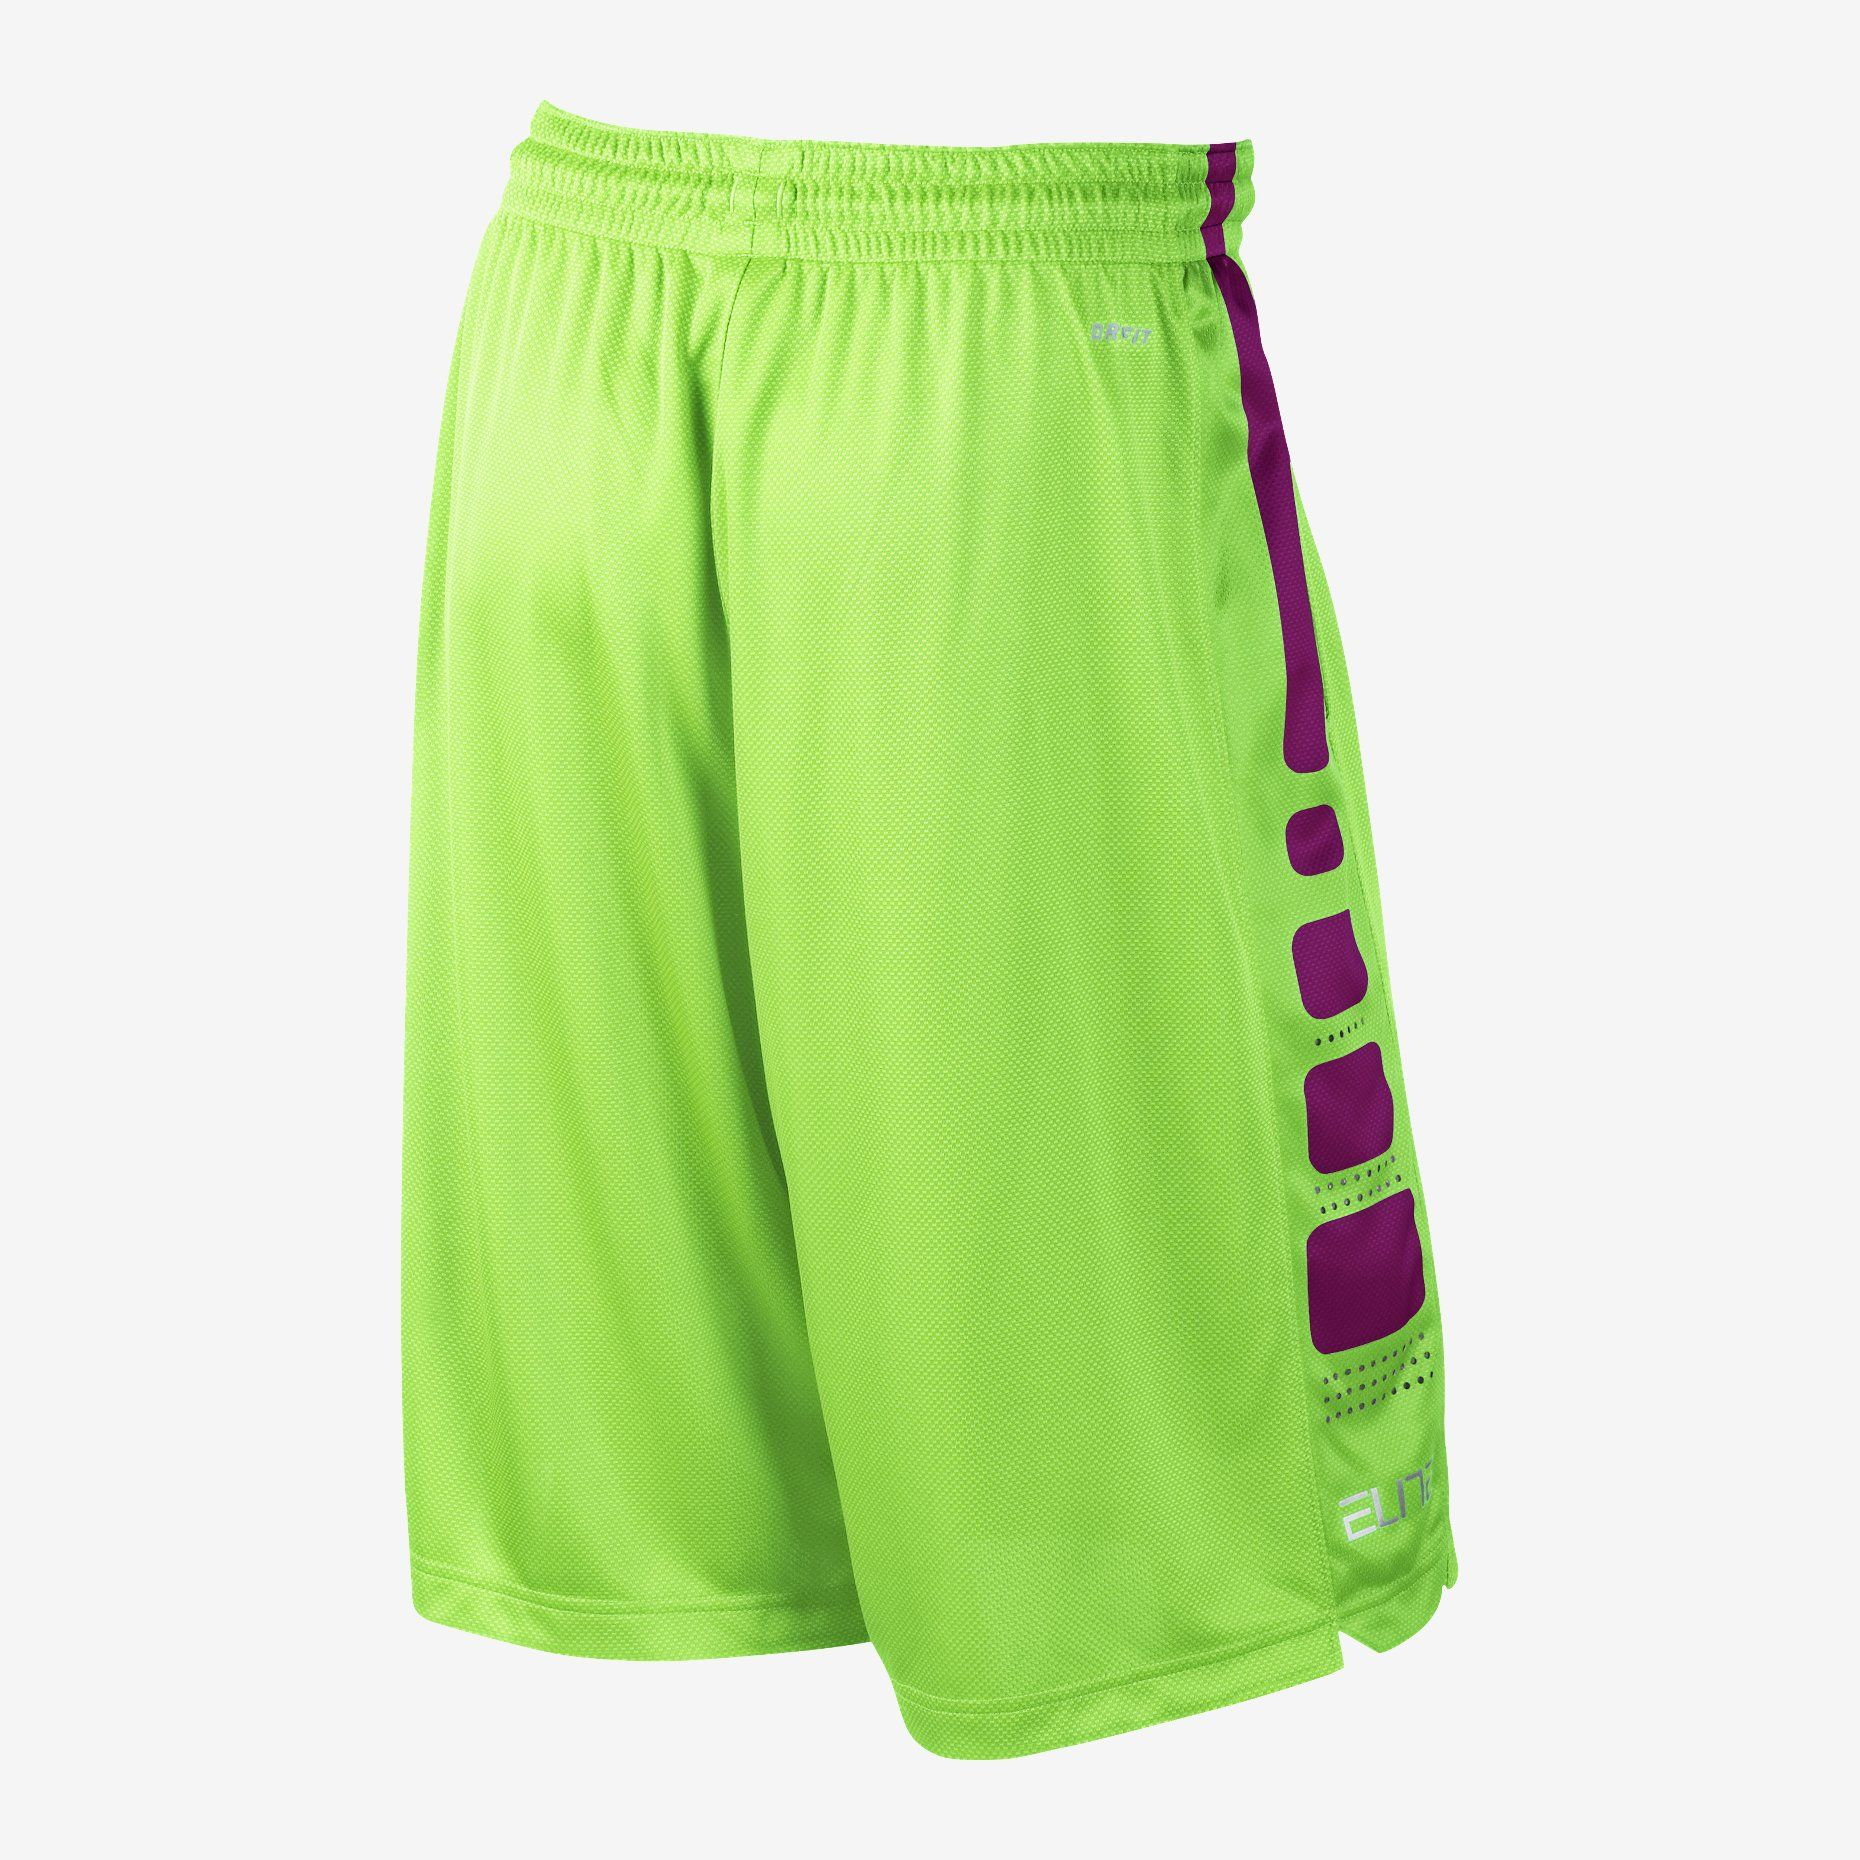 wholesale dealer 5e9f9 5171a Nike Elite Basketball Shorts | Sports | Nike blazer, Nike ...